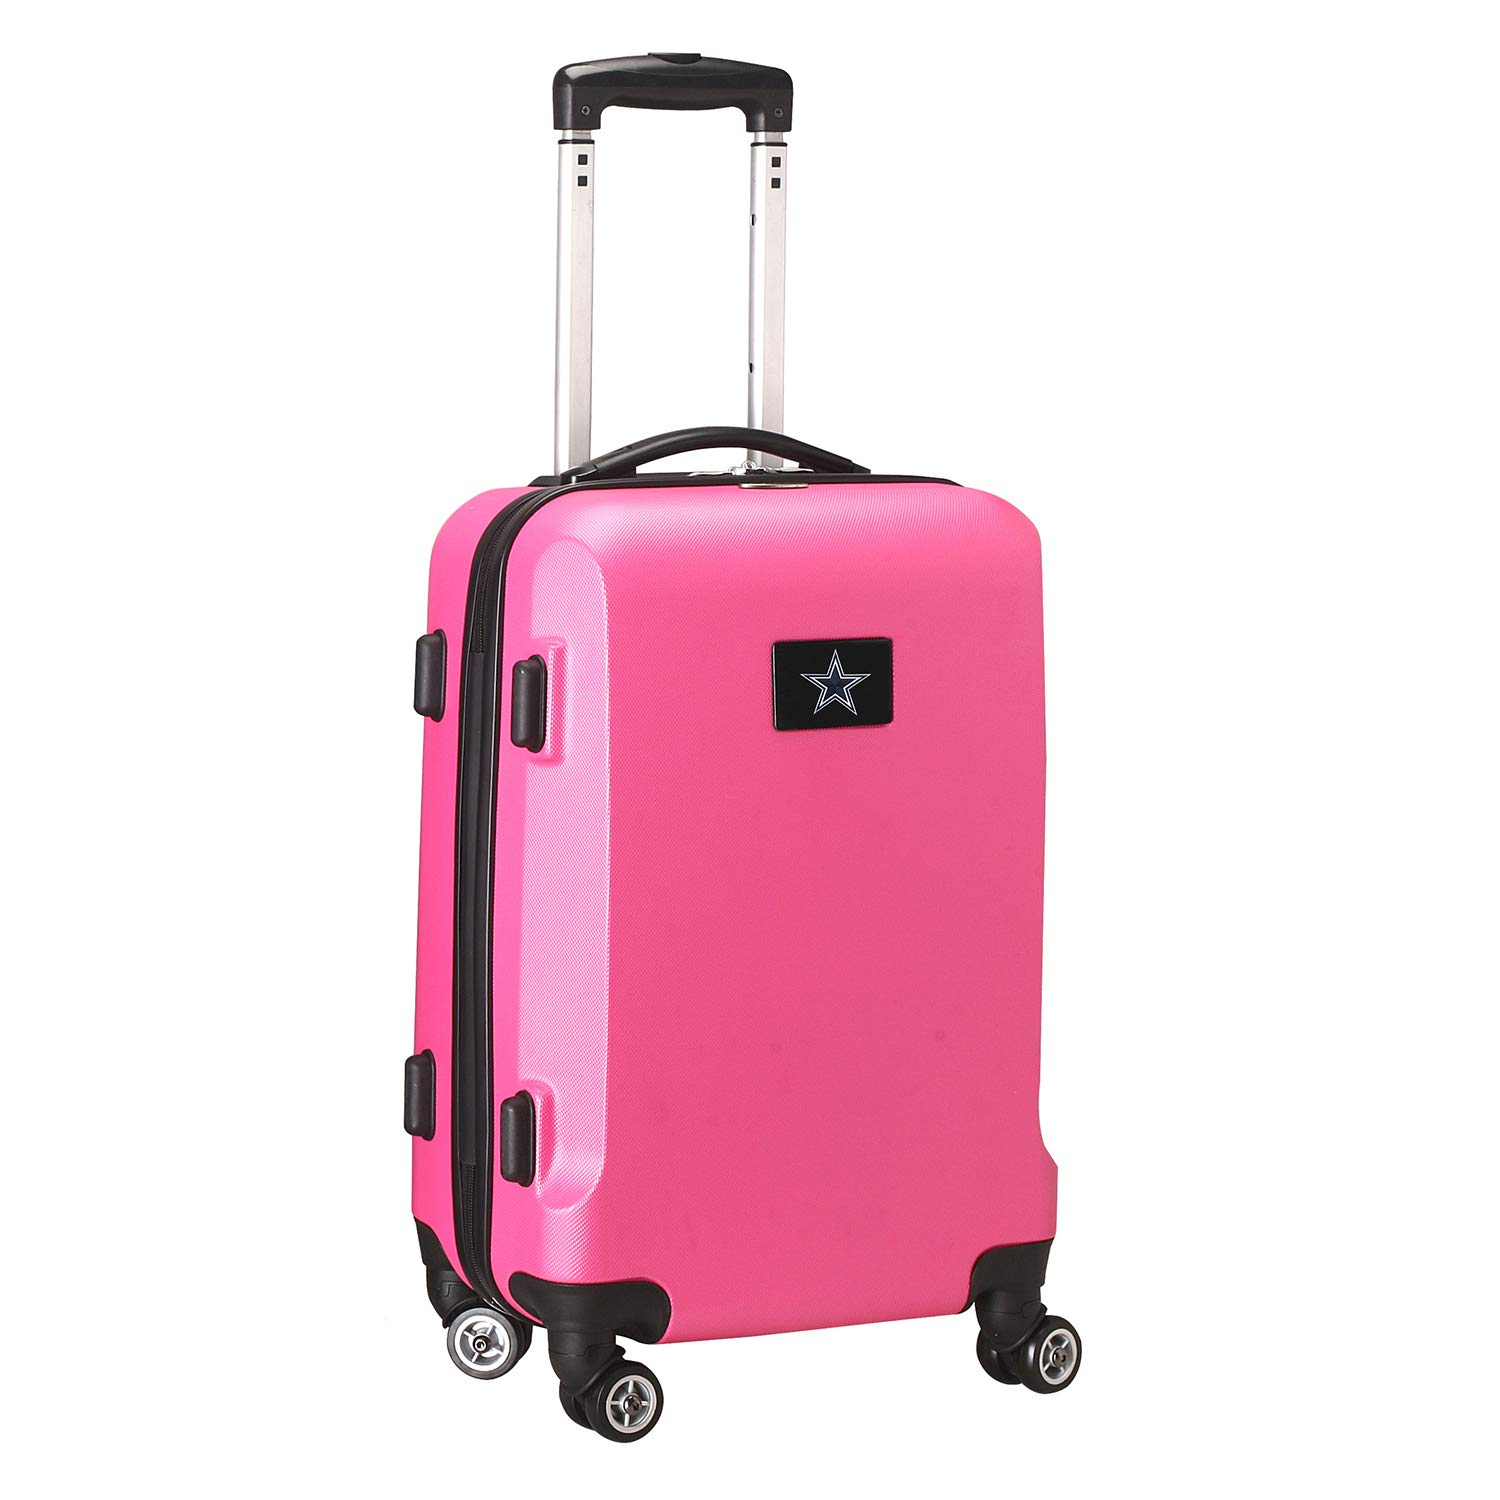 NFL Dallas Cowboys Carry-On Hardcase Luggage Spinner, Pink